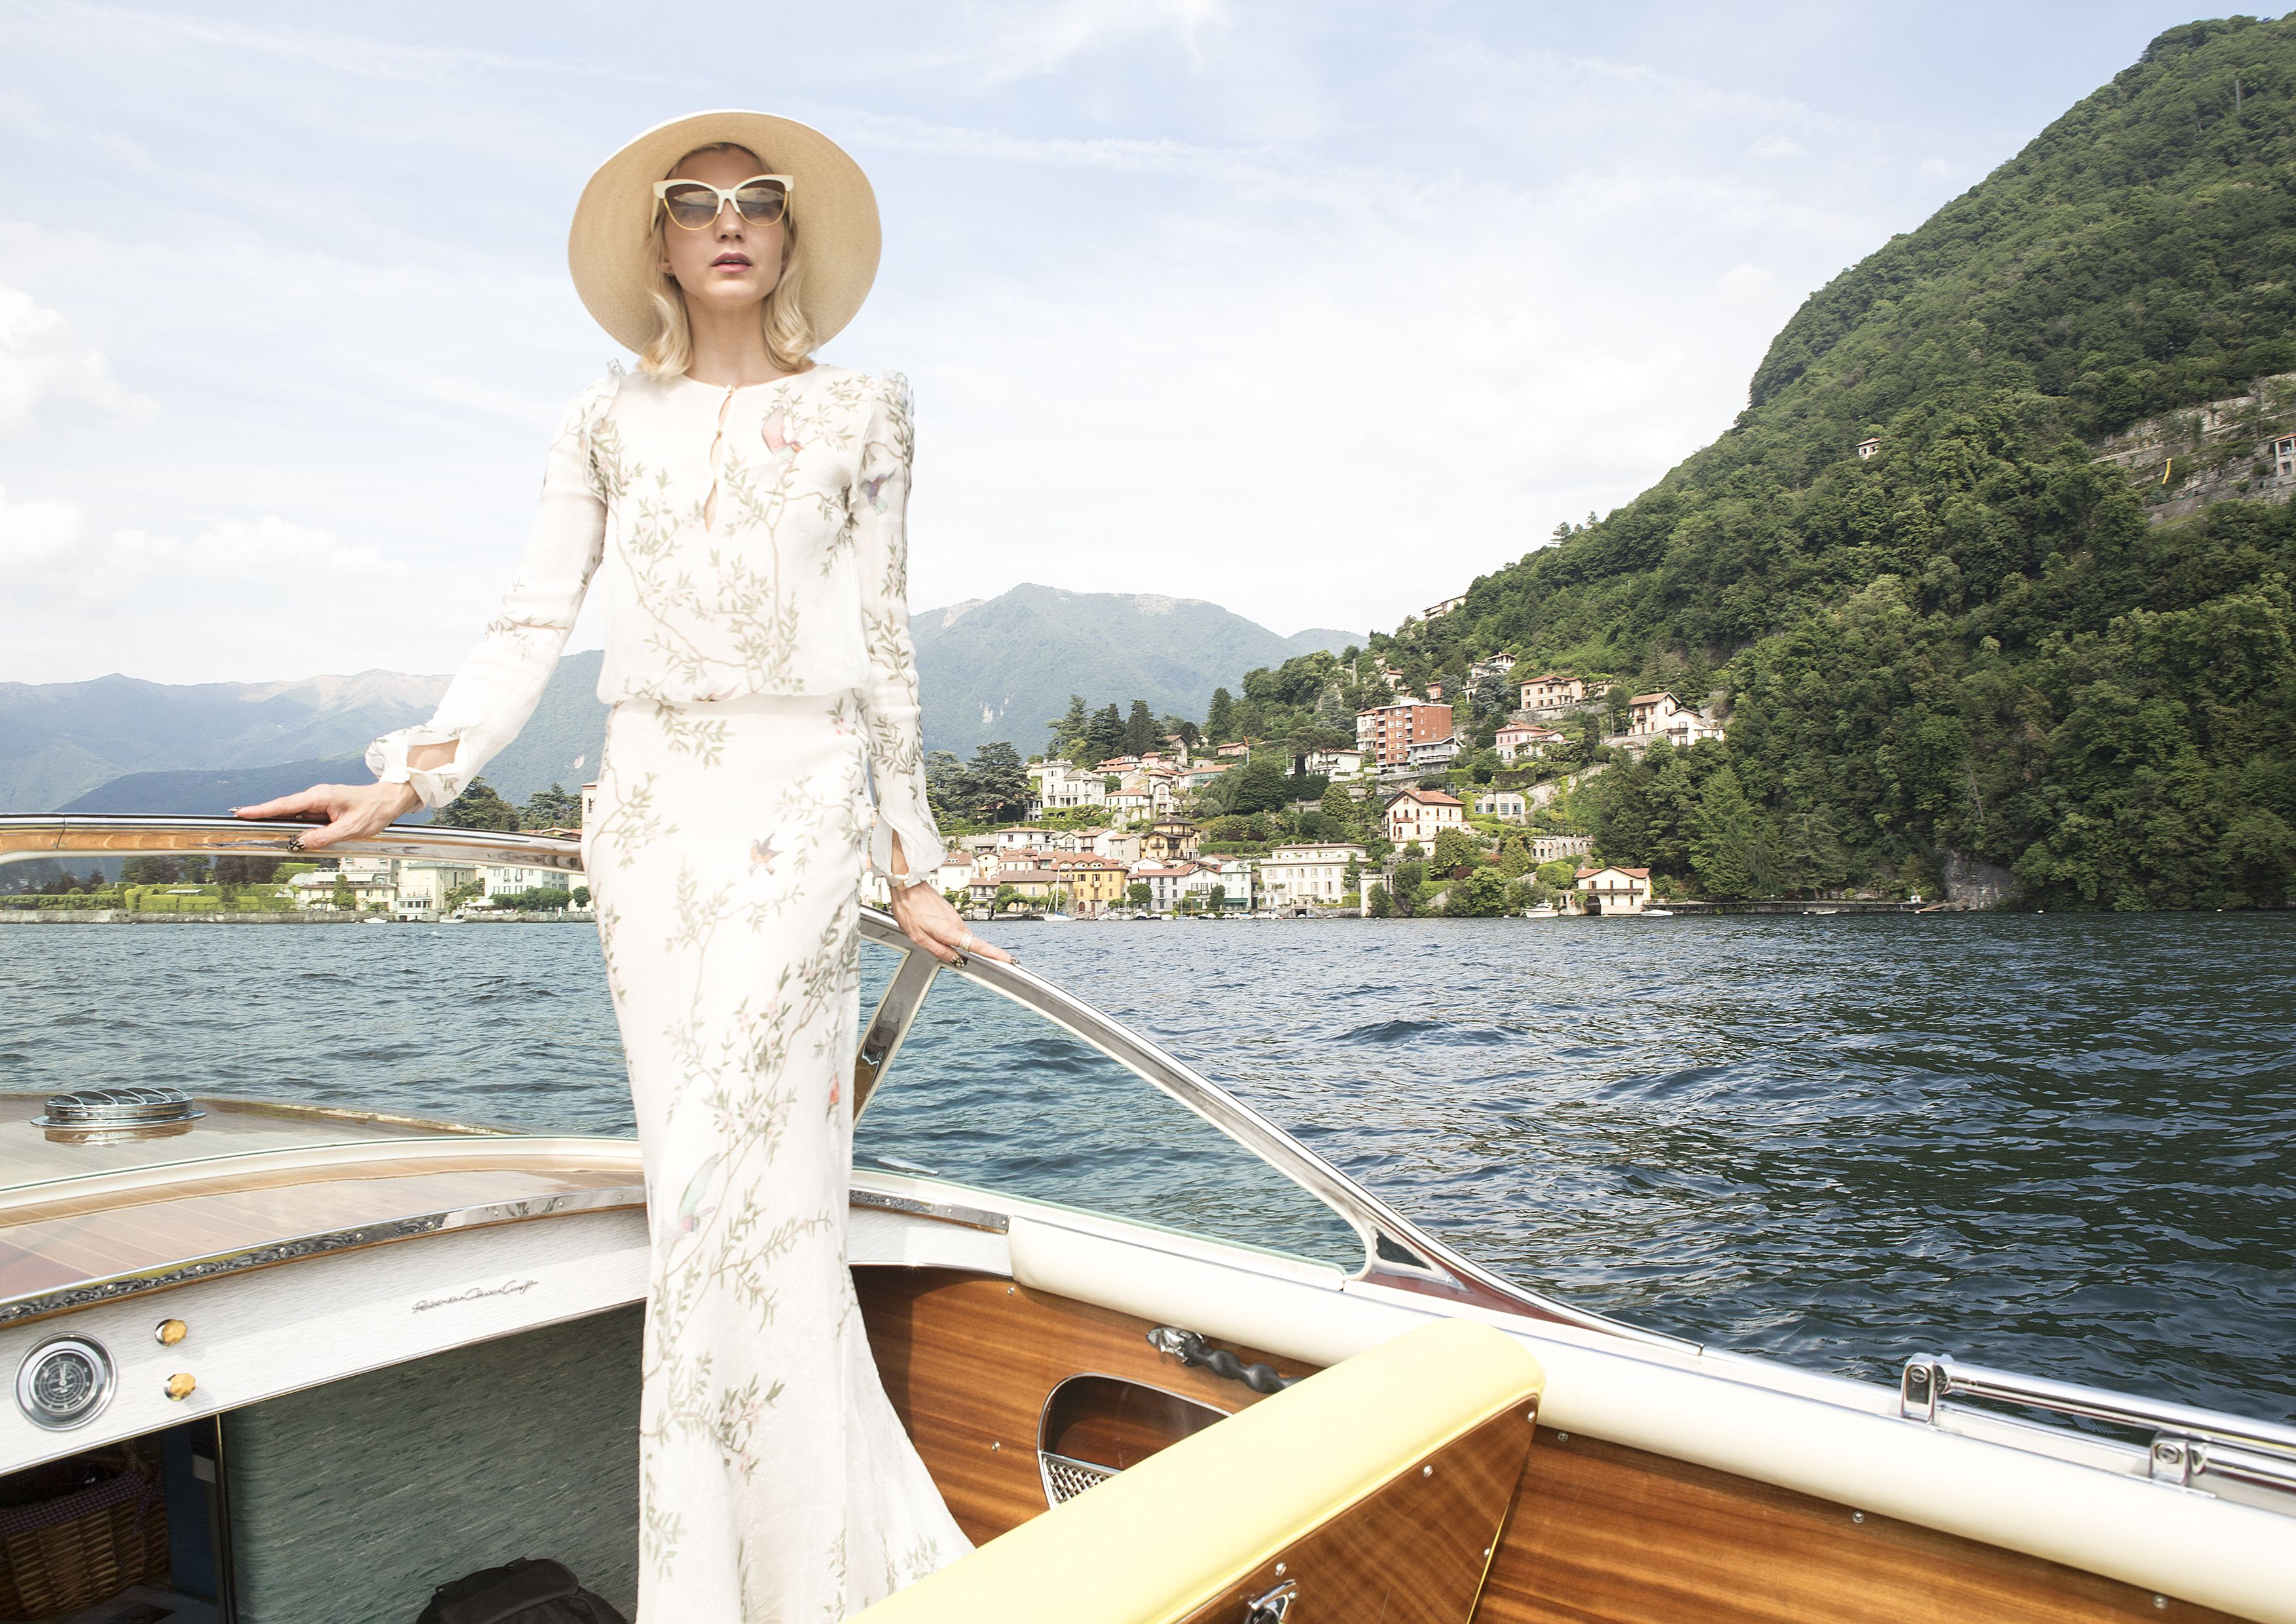 Samantha Angelo, The Eye Travels, The Eye Has To Travel, Lake Como, Lake Como Italy, Italy, Italian Holiday, Riva, Boat, Boating, Monique Lhuillier, Monique Lhuillier Dress, Dita Eyewear, Dita Temptation, Stylist, Creative Consultant, Fashion, Travel, Style, Boating on Lake Como, Riva Boat,